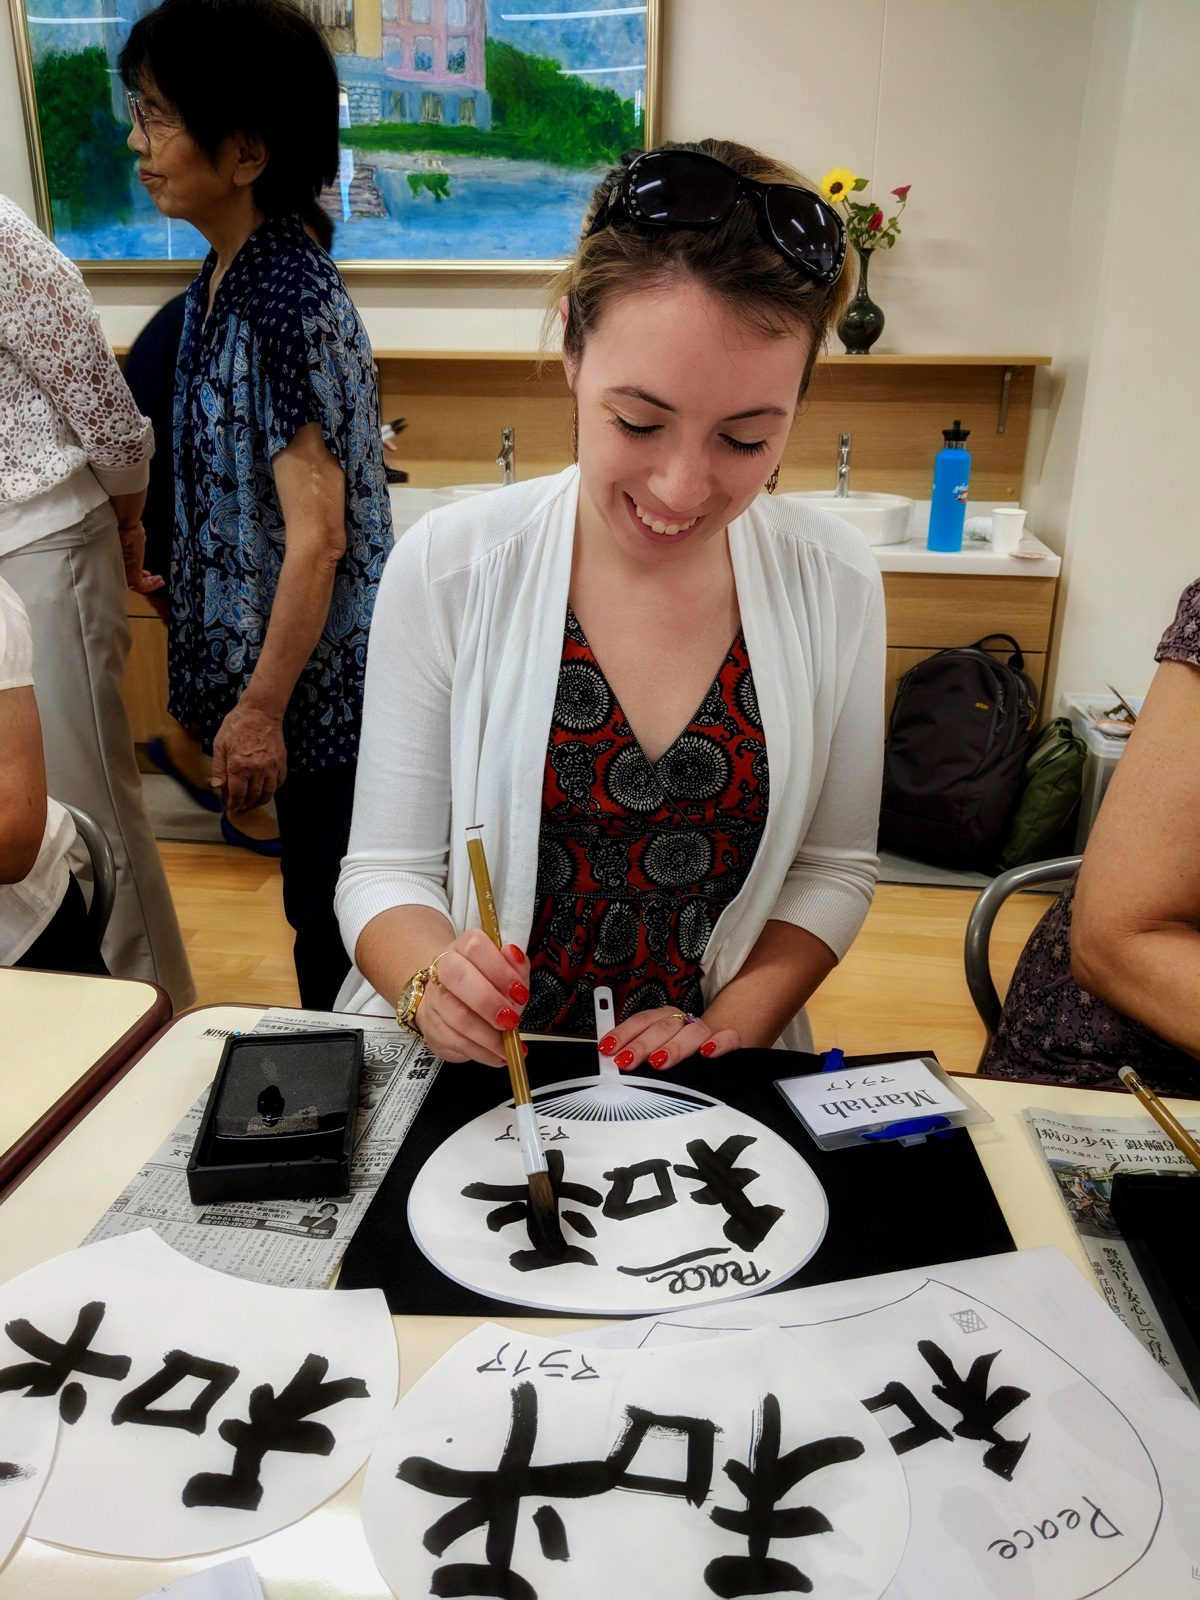 Learning Japanese calligraphy from high school students from Jogakuin High School